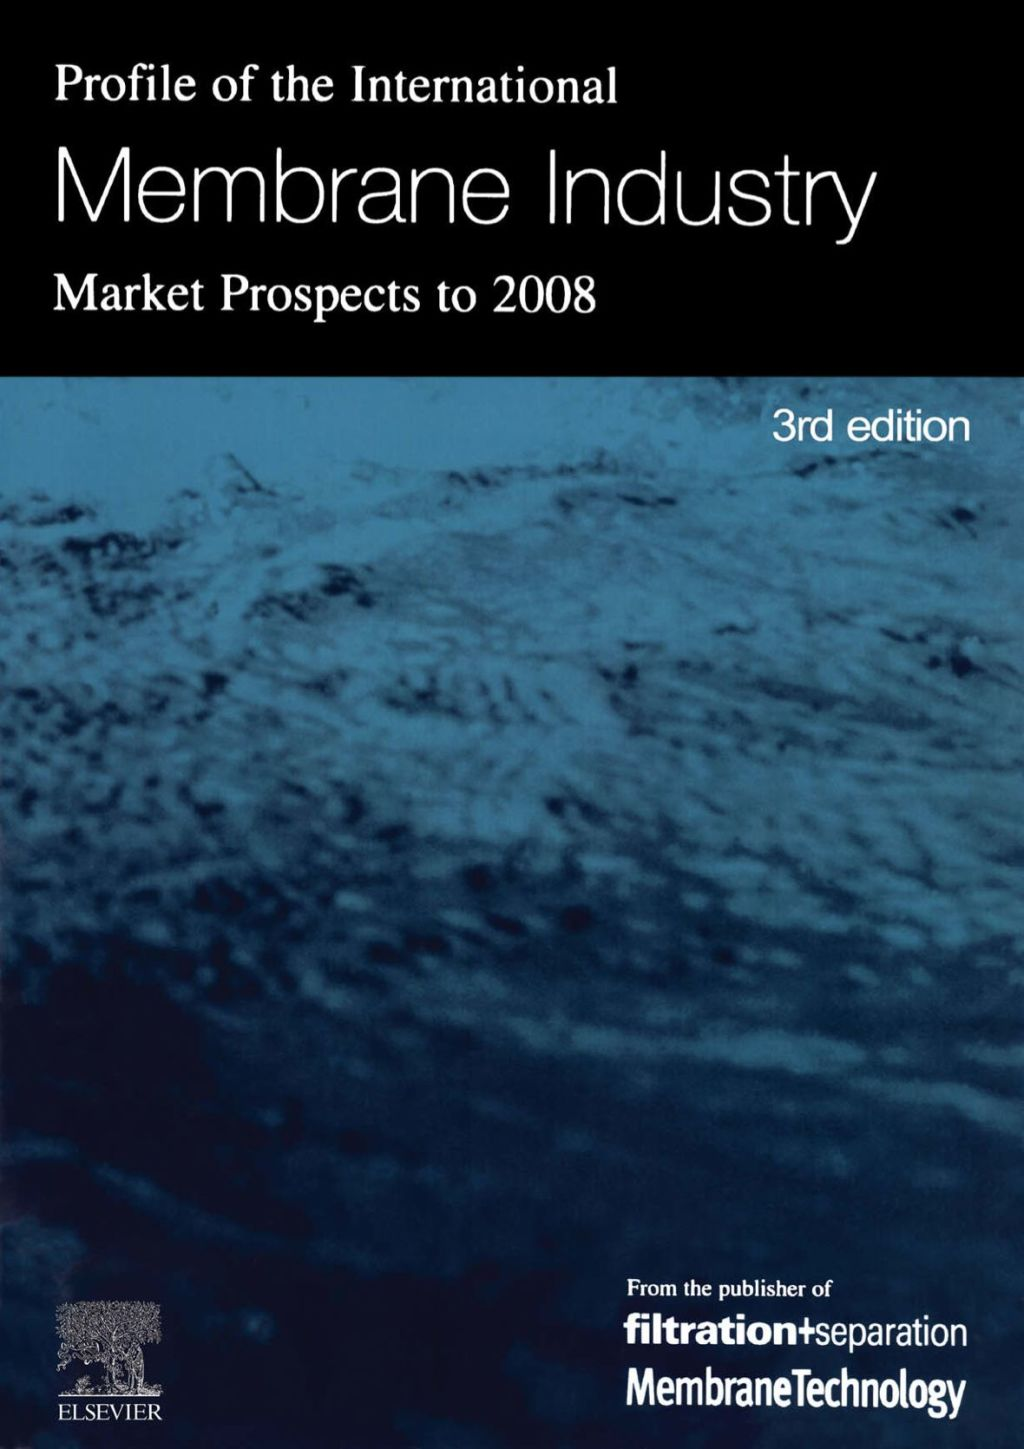 Profile of the International Membrane Industry - Market Prospects to 2008 (ebook) eBooks